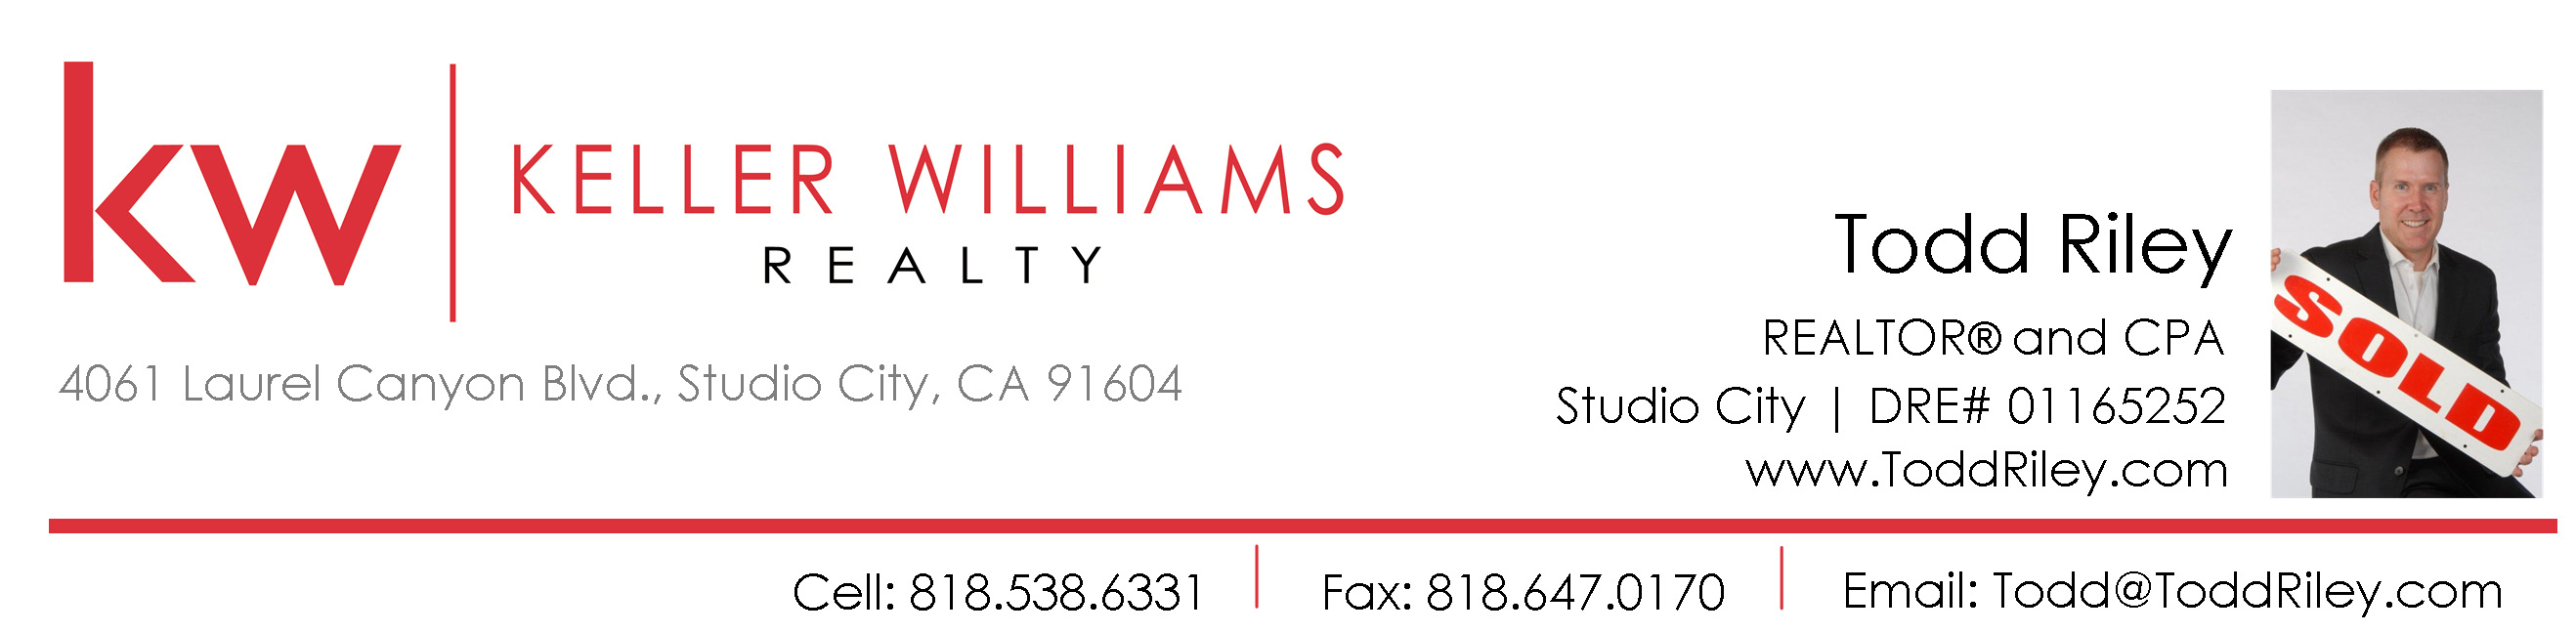 Todd Riley - West Hills Real Estate Agent